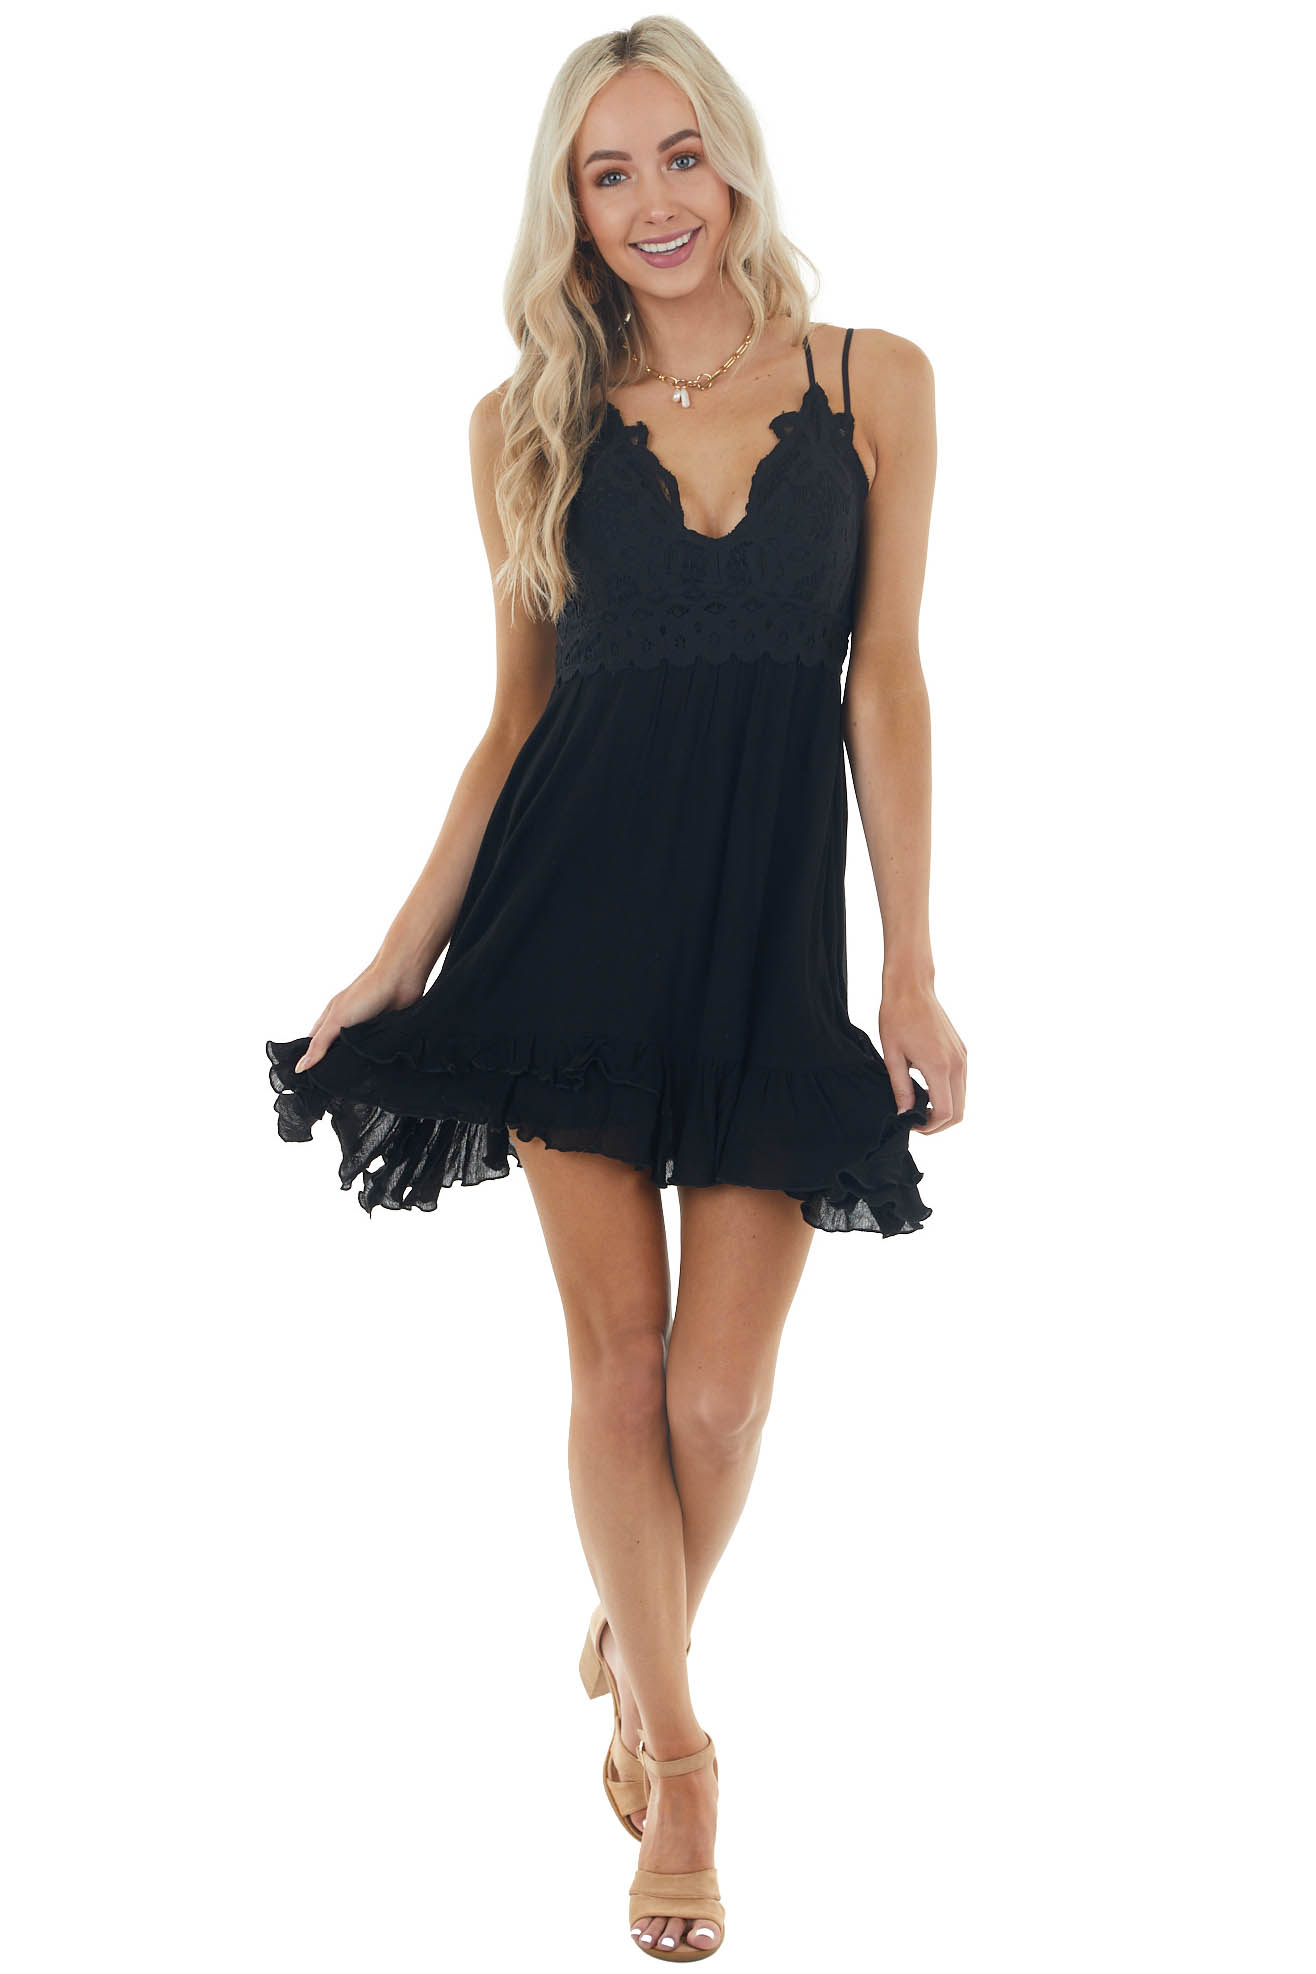 Black Sleeveless Dress with Crochet Lace Details